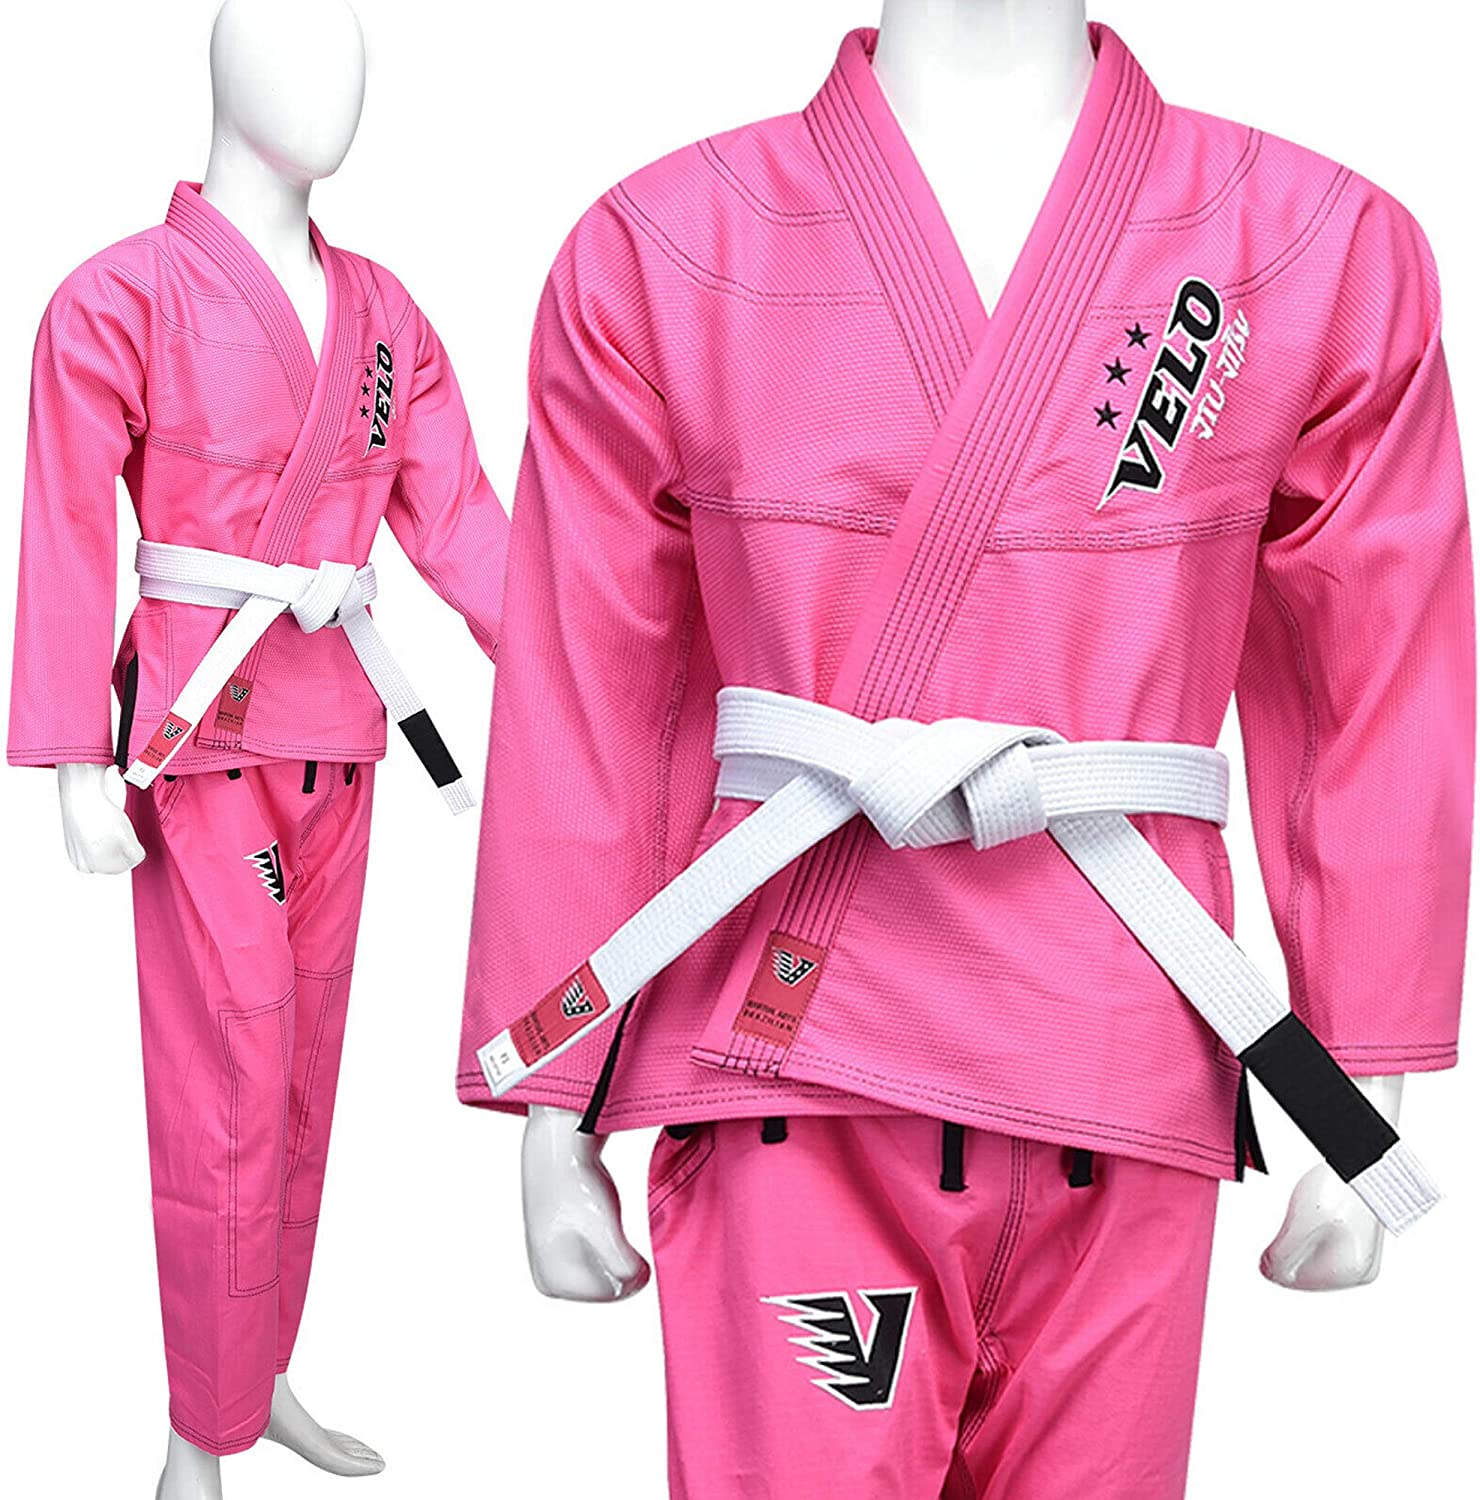 PINK NEW BLACK TIGER FIGHT GEAR BJJ  KIMONOS SUITS WITH FREE BELT